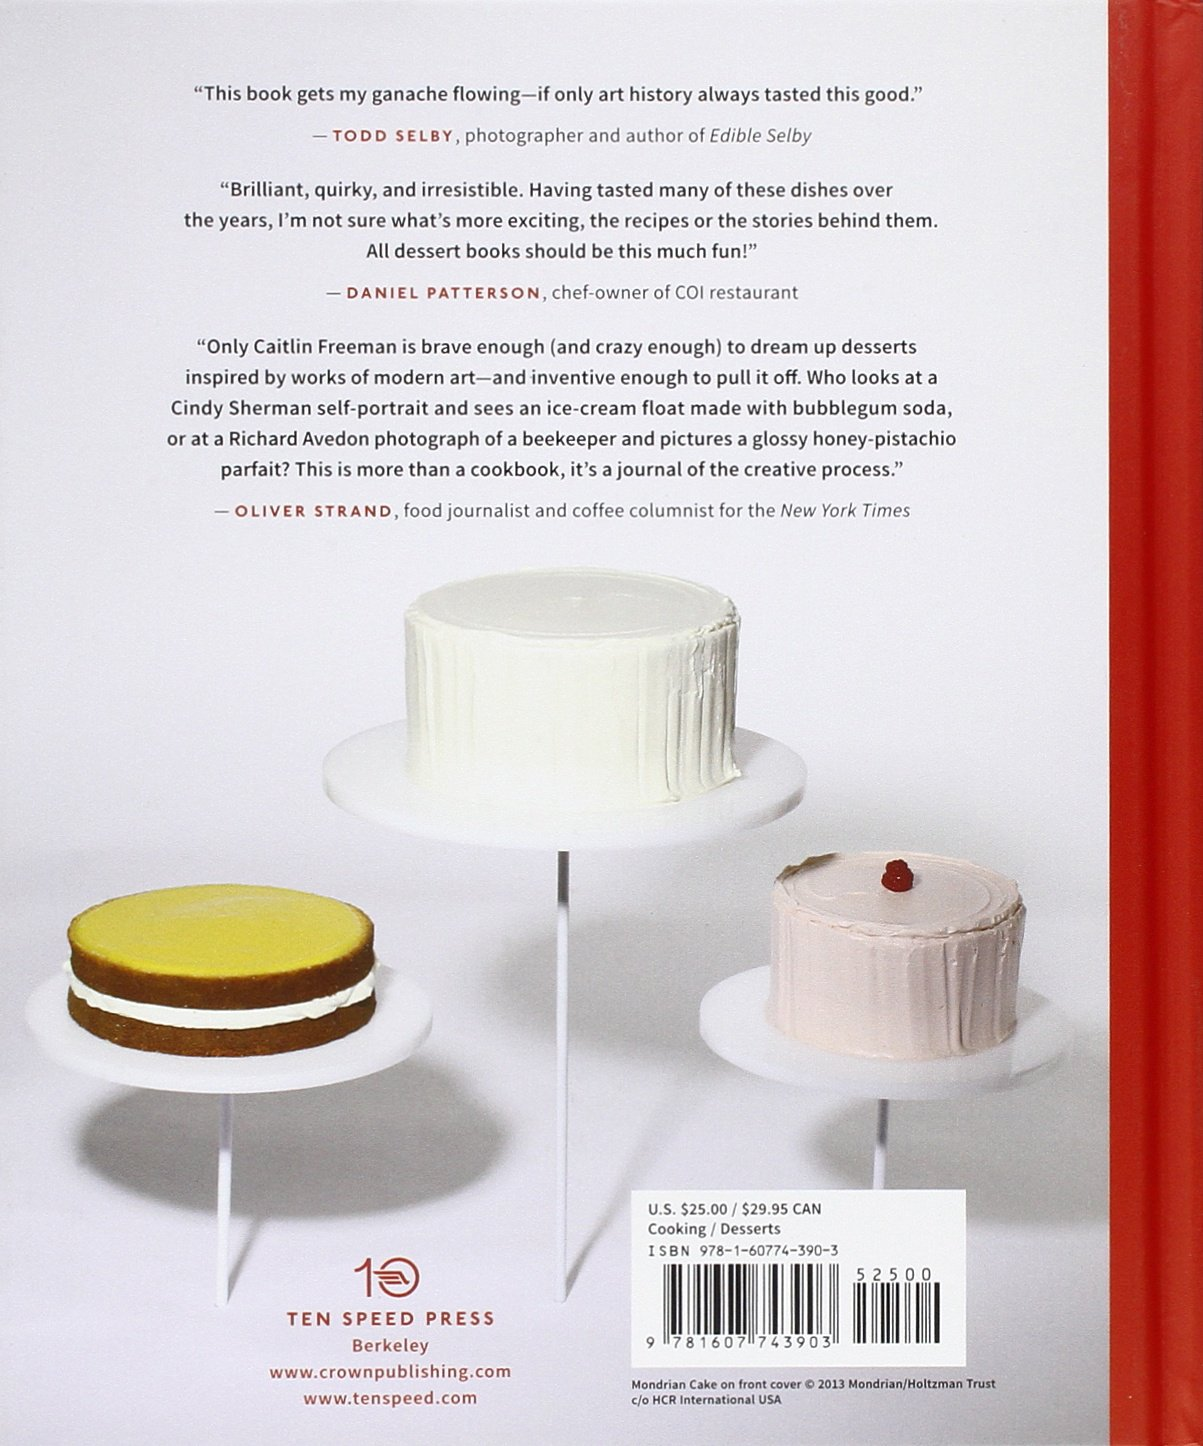 Modern Art Desserts: Recipes for Cakes, Cookies, Confections, and Frozen  Treats Based on Iconic Works of Art: Amazon.co.uk: Caitlin Freeman:  9781607743903: ...